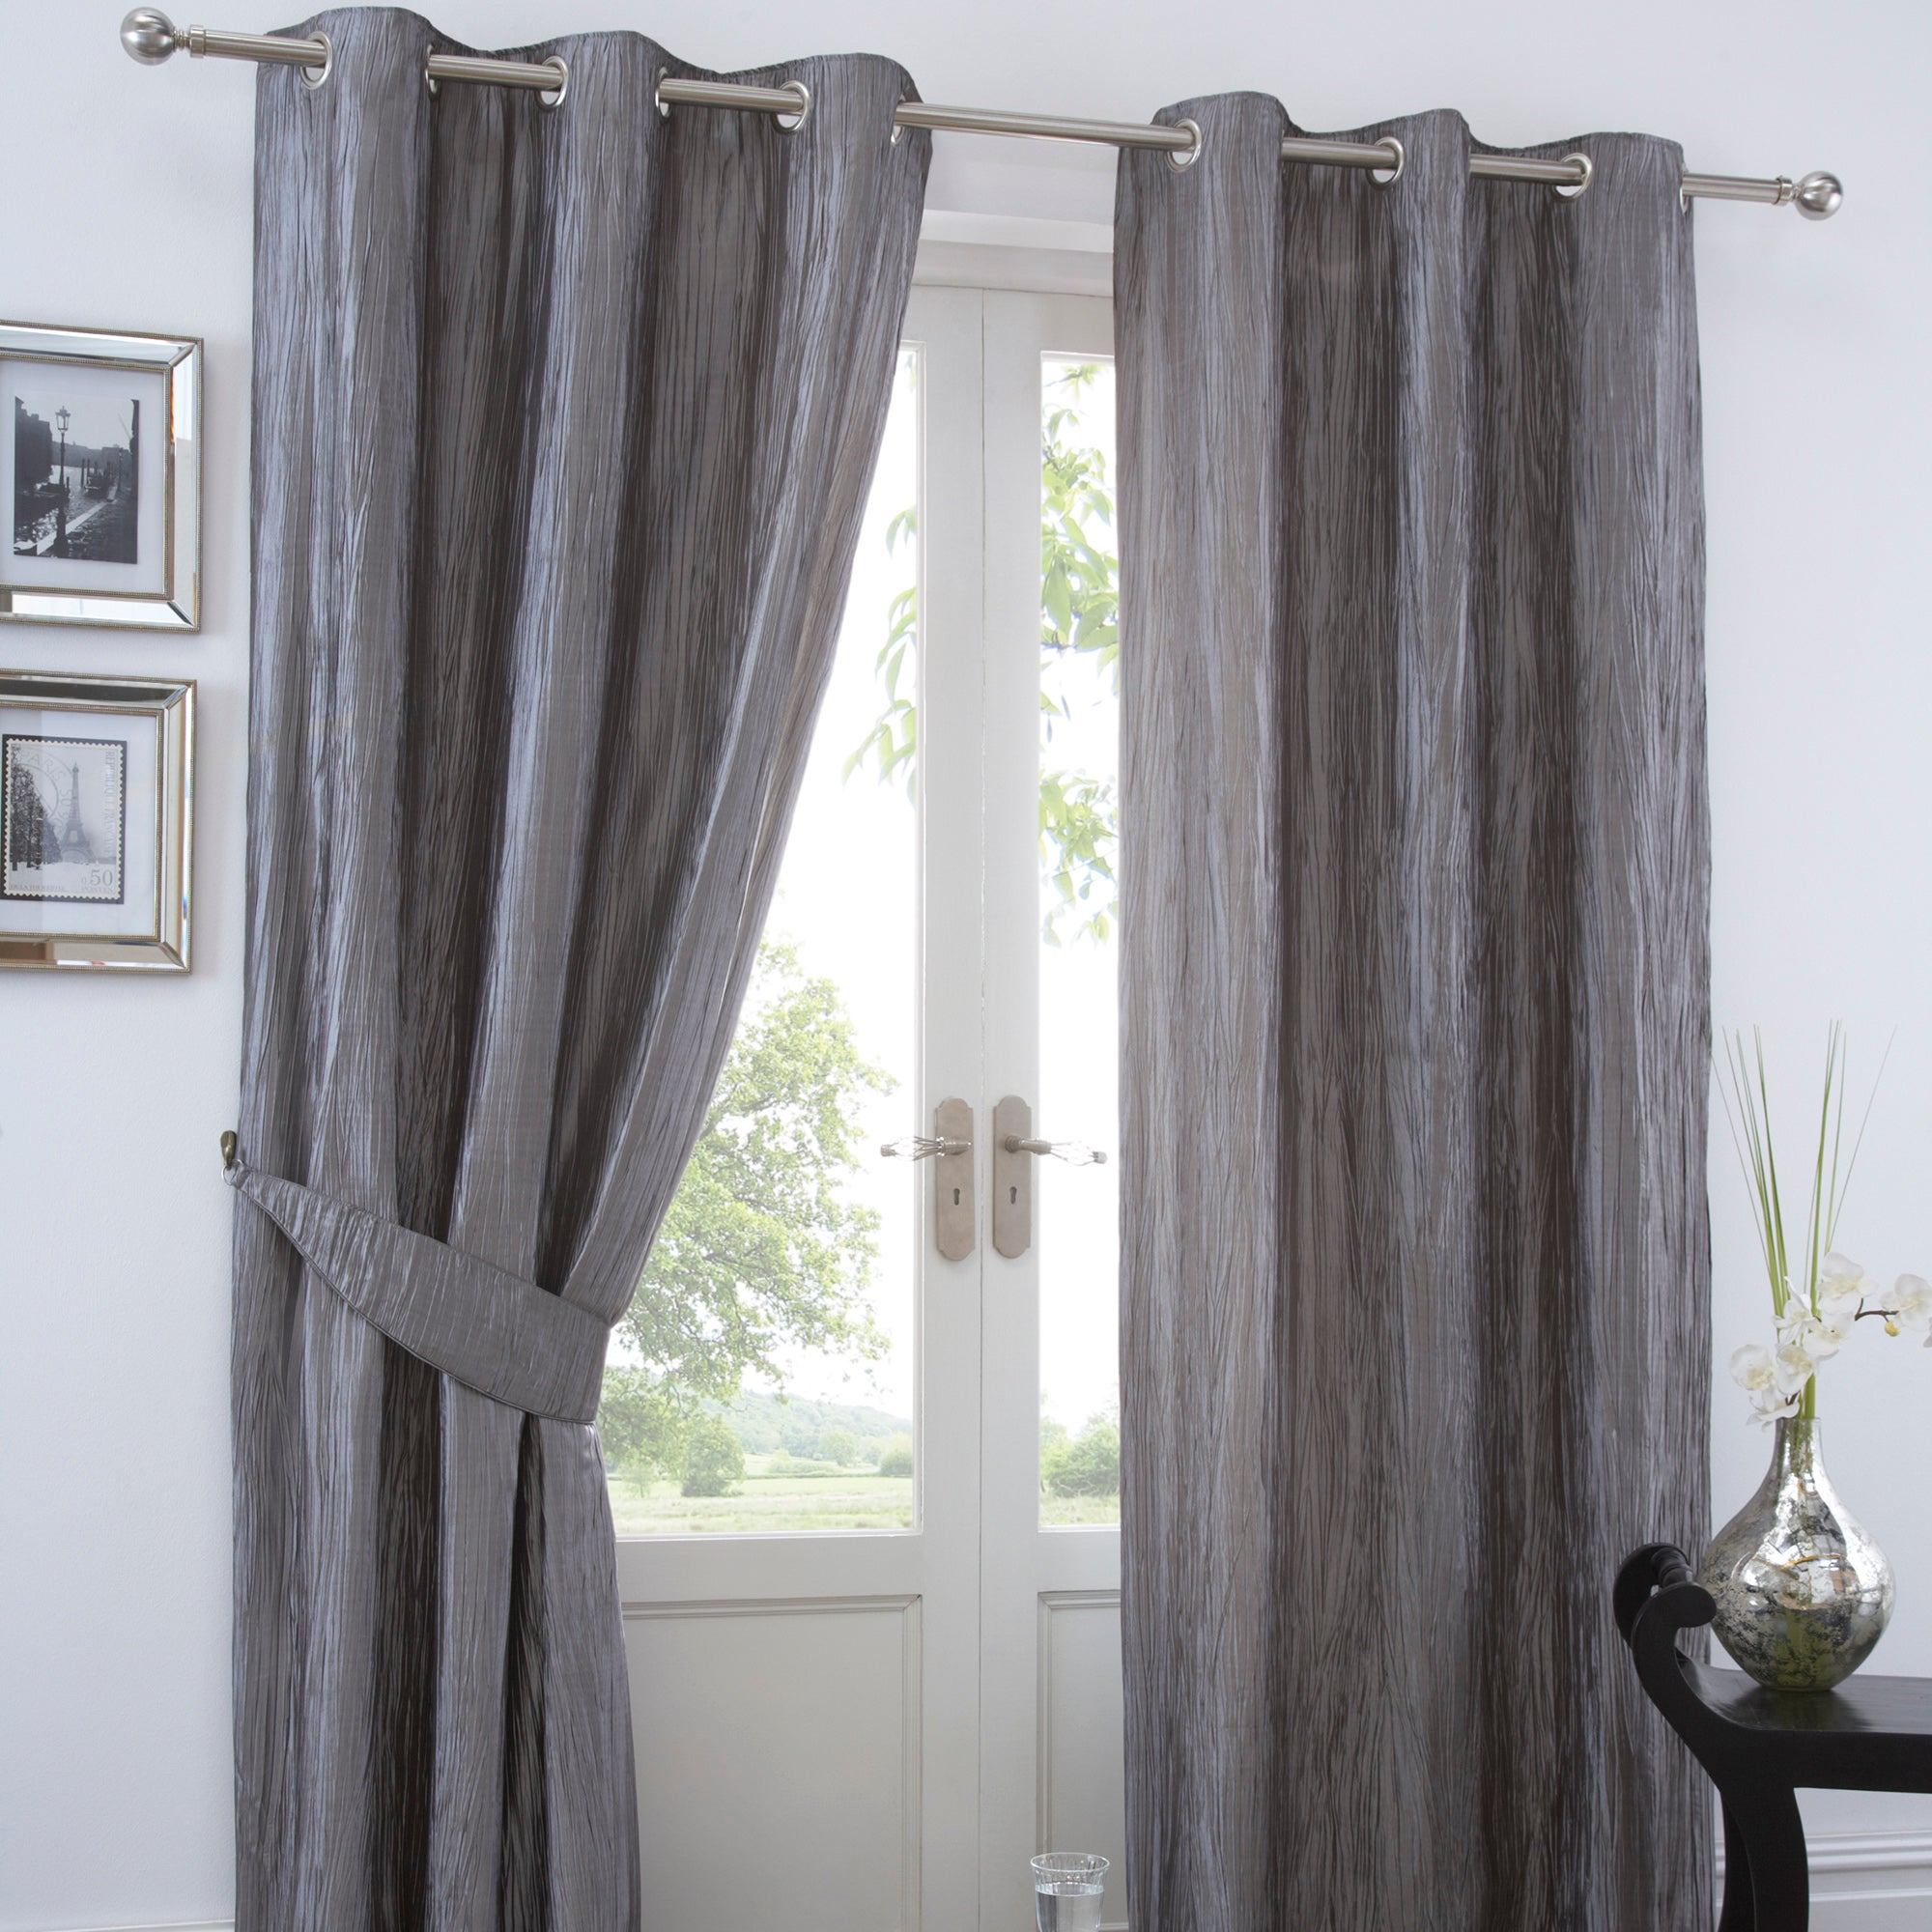 Silver crushed taffeta lined eyelet curtains dunelm for Space fabric dunelm